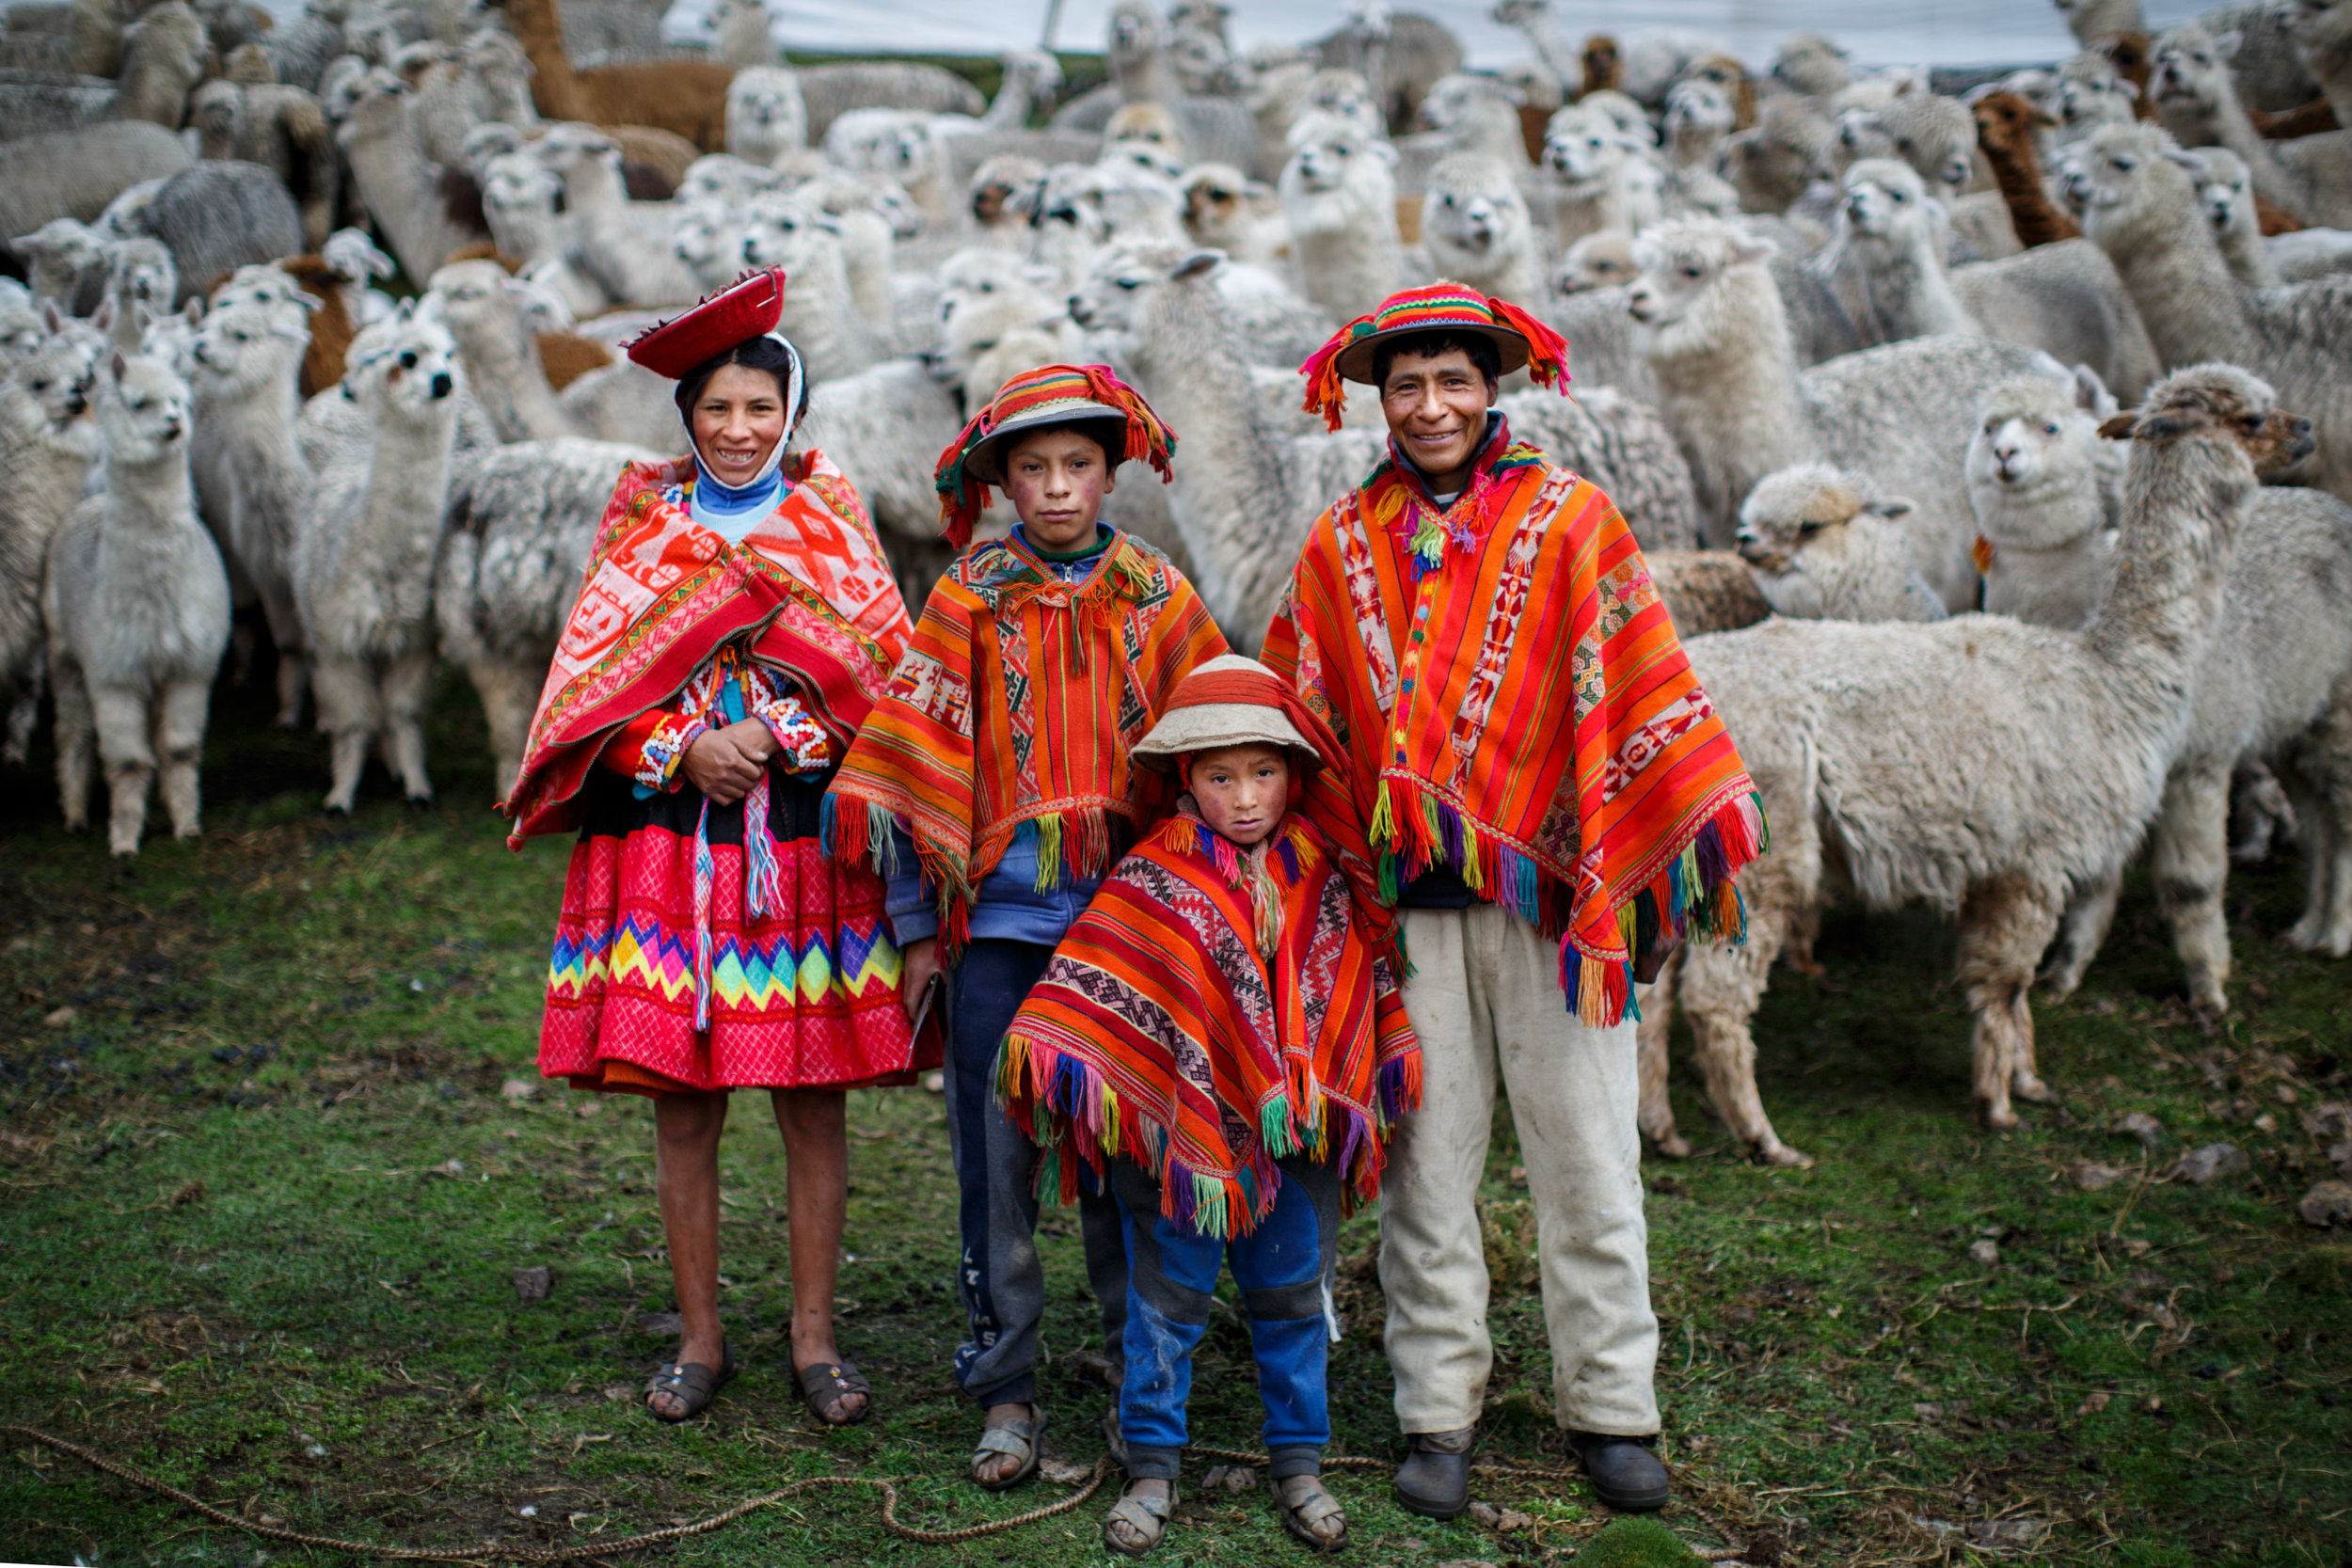 The Yupanqui Mamani Family in front of their alpaca herd.